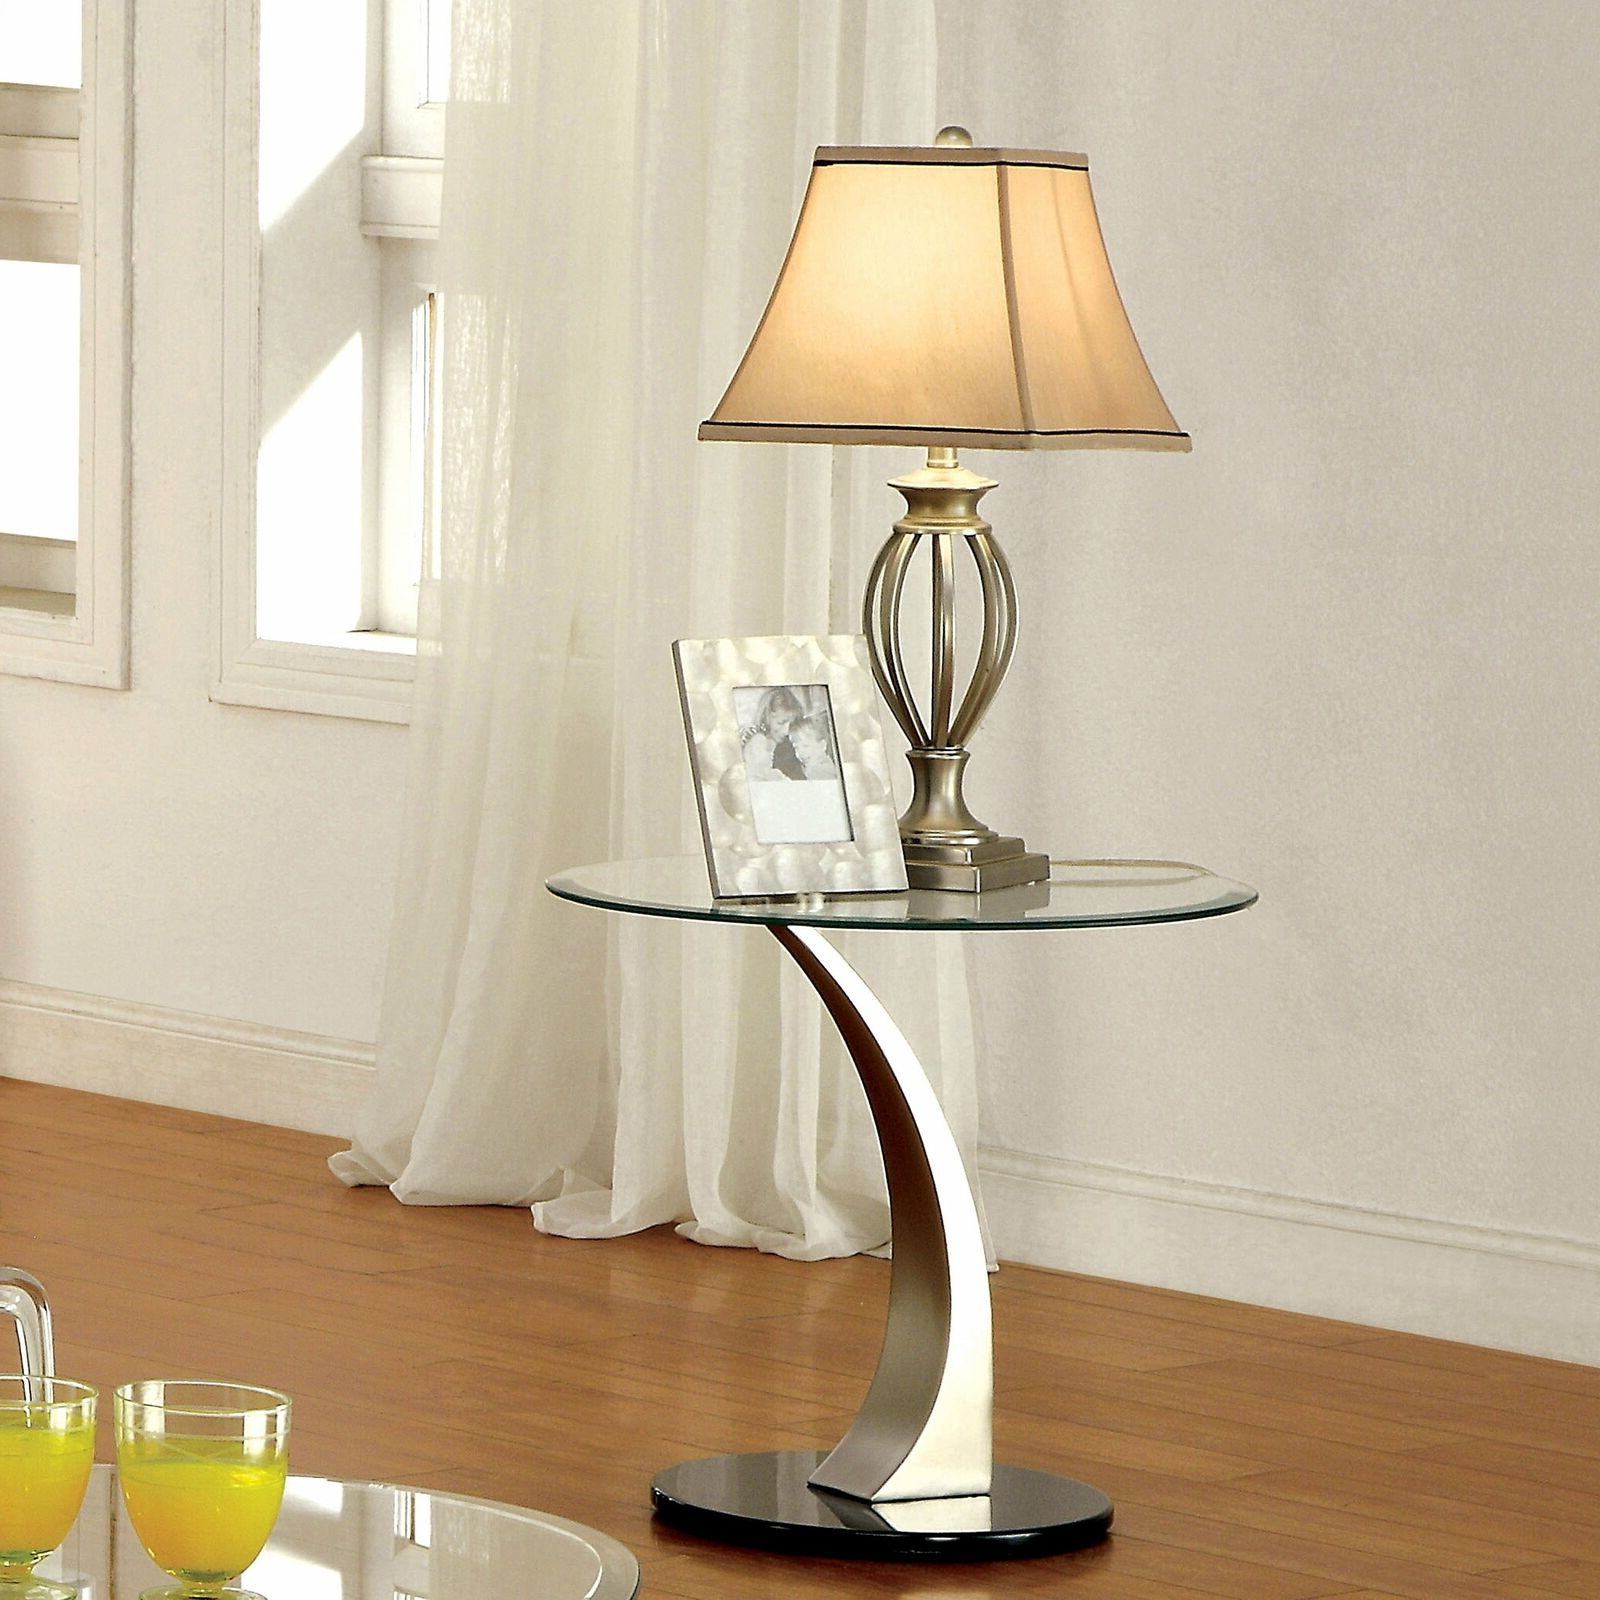 Furniture Of America Velma Satin Plated End Table With Clear Silver N/a Intended For Current Carmella Satin Plated Coffee Tables (View 14 of 20)